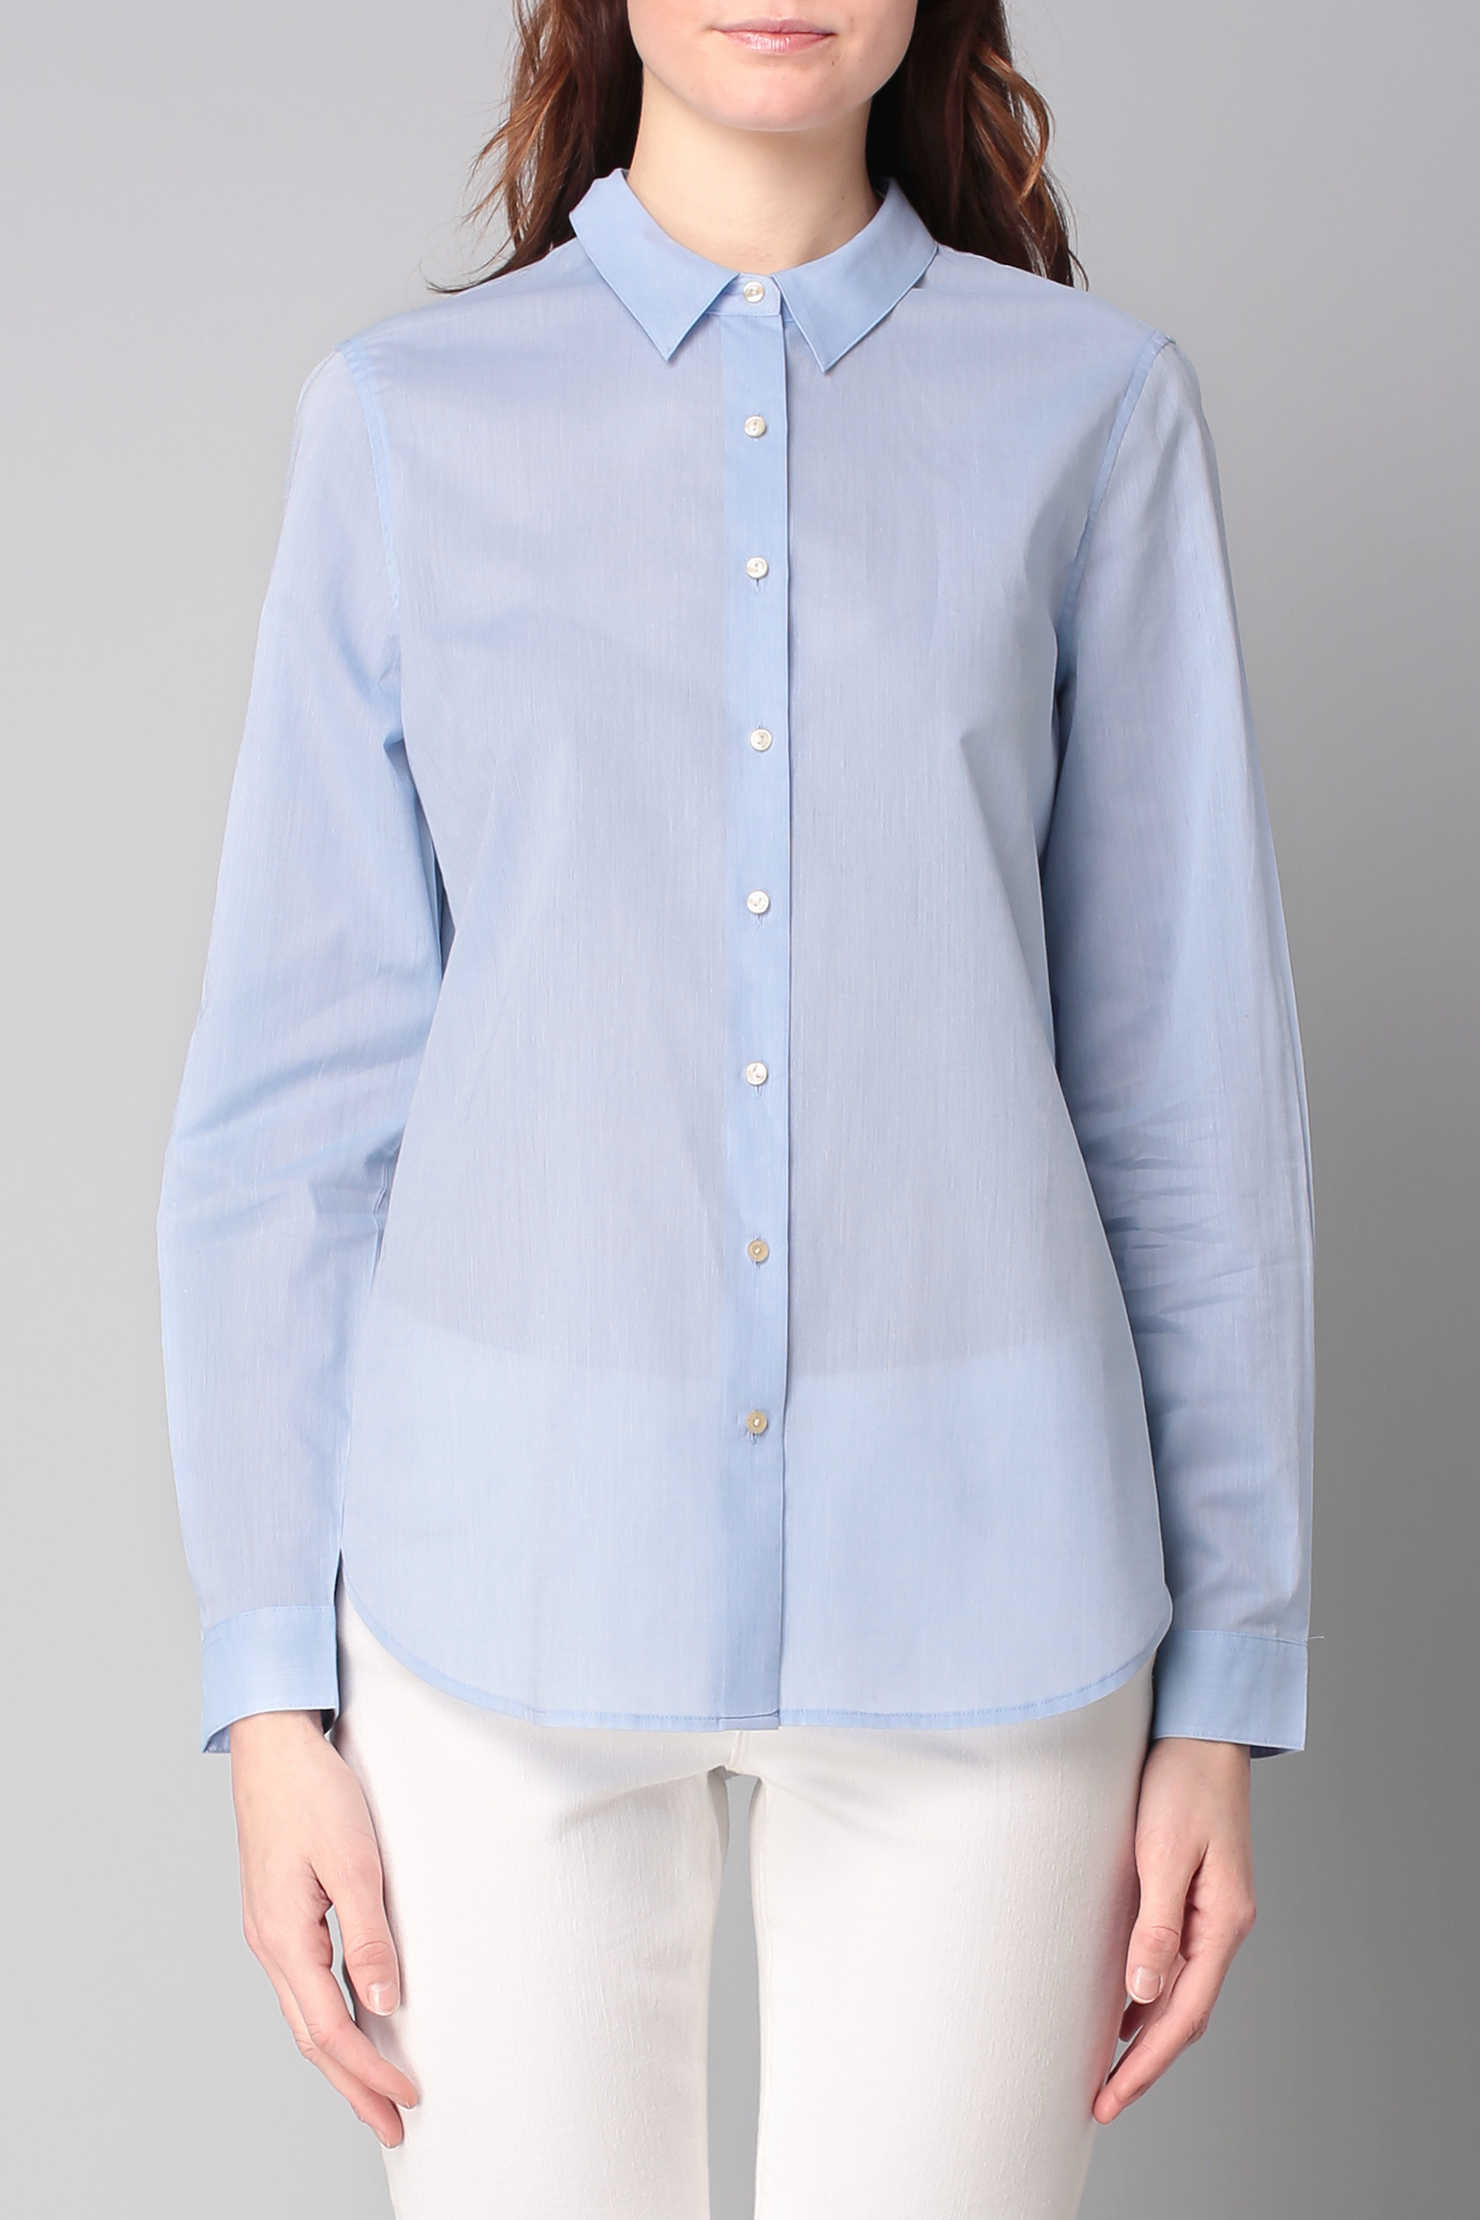 maison scotch shirt blouse in blue lyst. Black Bedroom Furniture Sets. Home Design Ideas